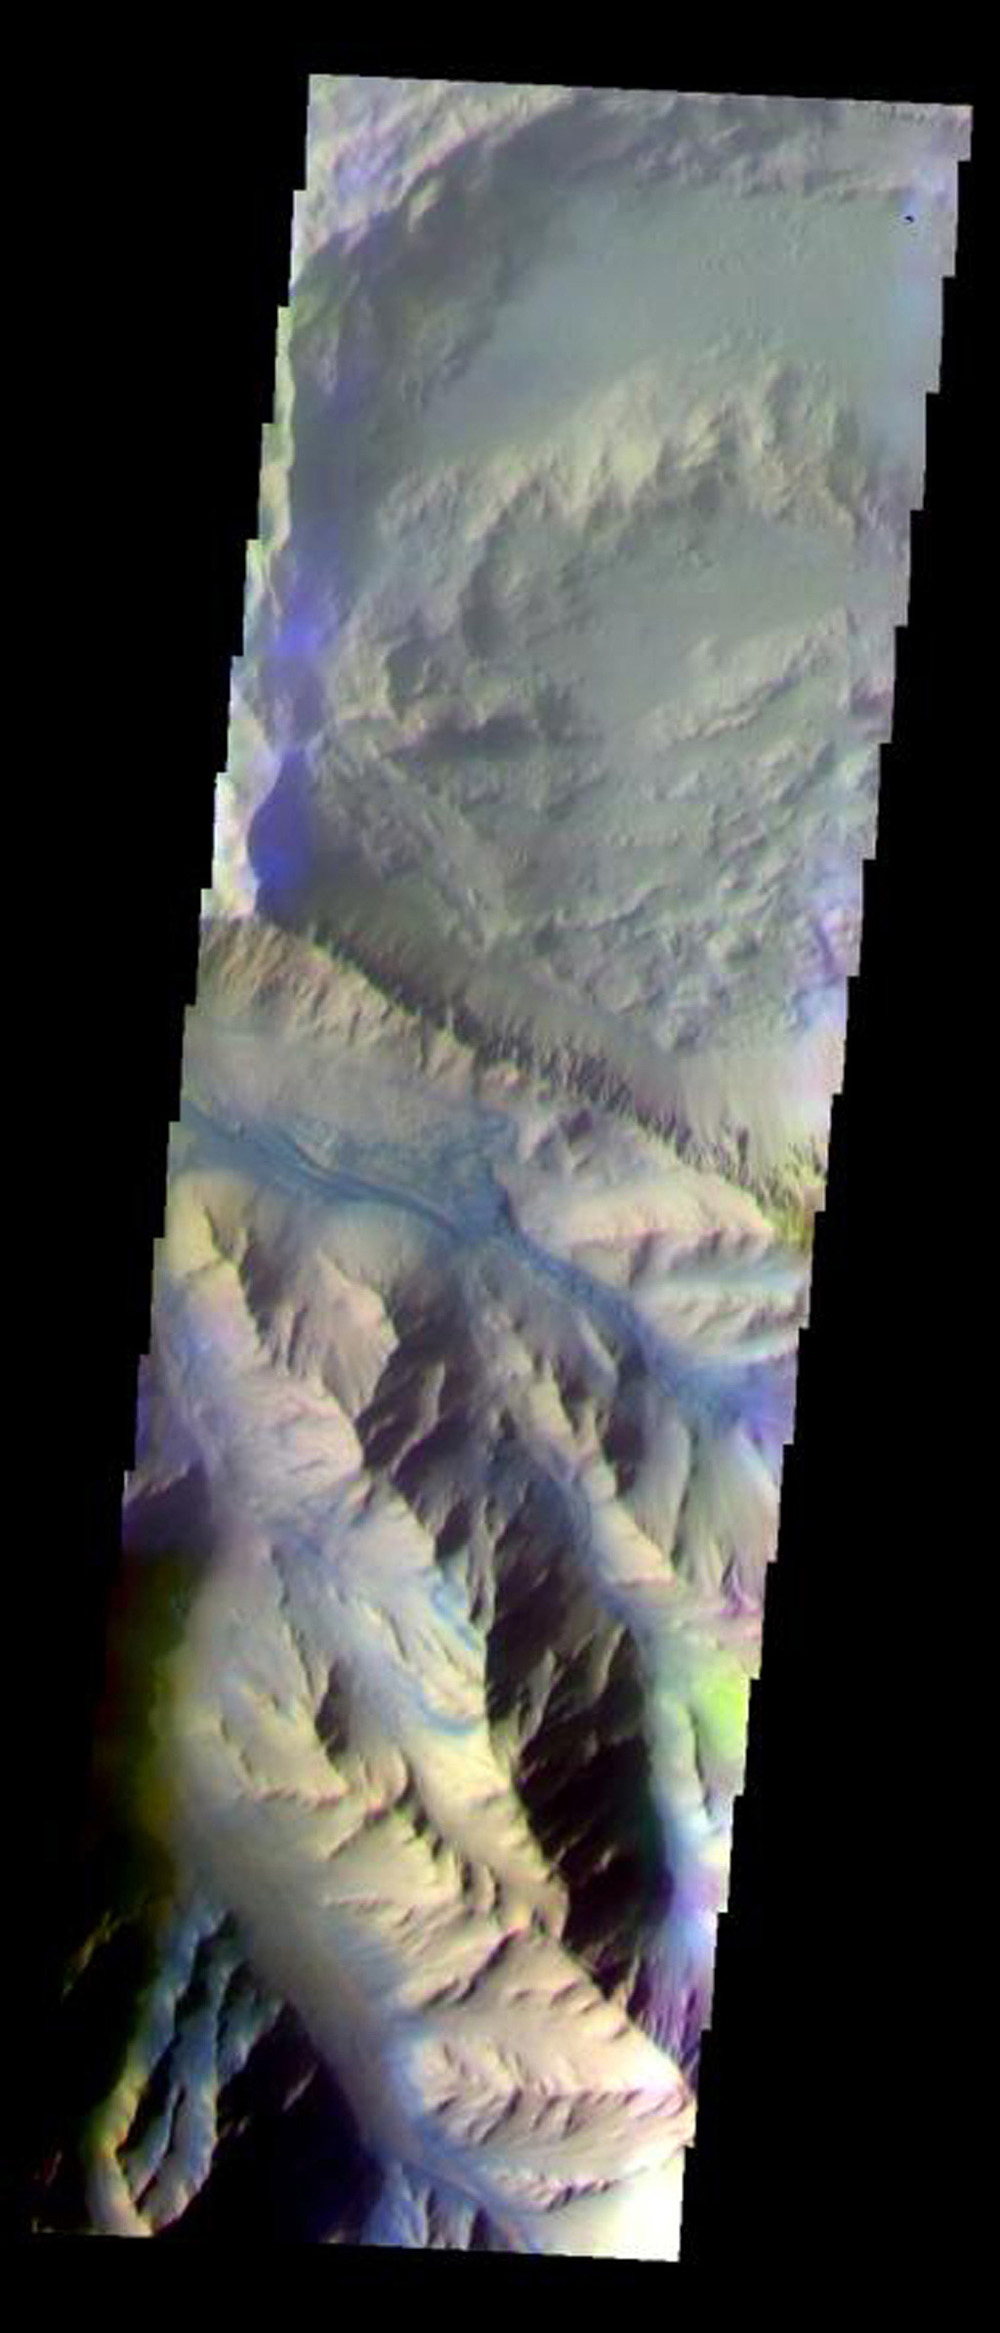 This false-color image from NASA's Mars Odyssey spacecraft shows part of the central ridge in Coprates Chasma, taken during Mars' southern fall season.